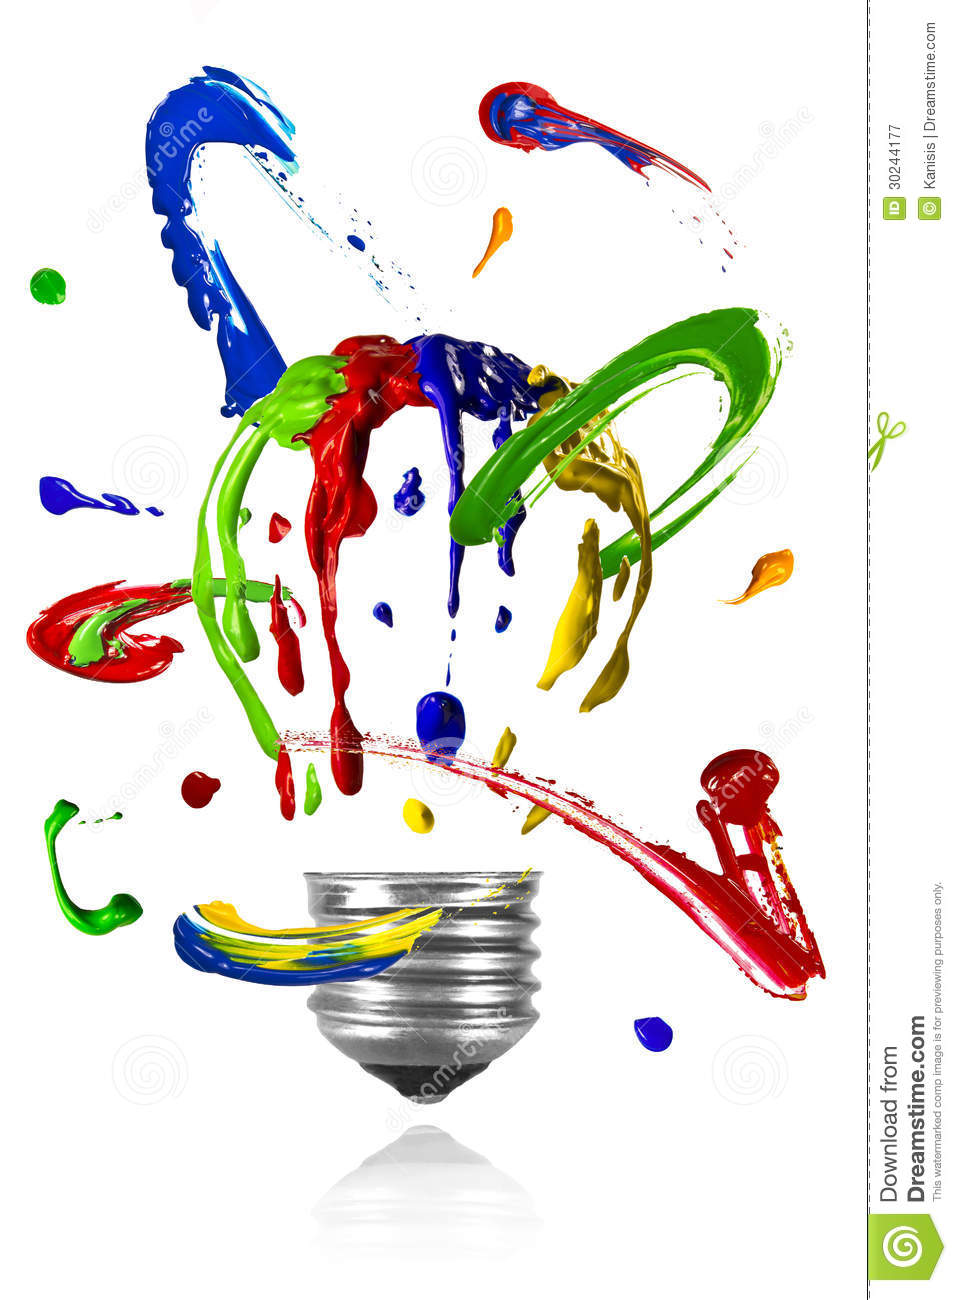 Paint Orbit Around Painted Light Bulb Royalty Free Stock.